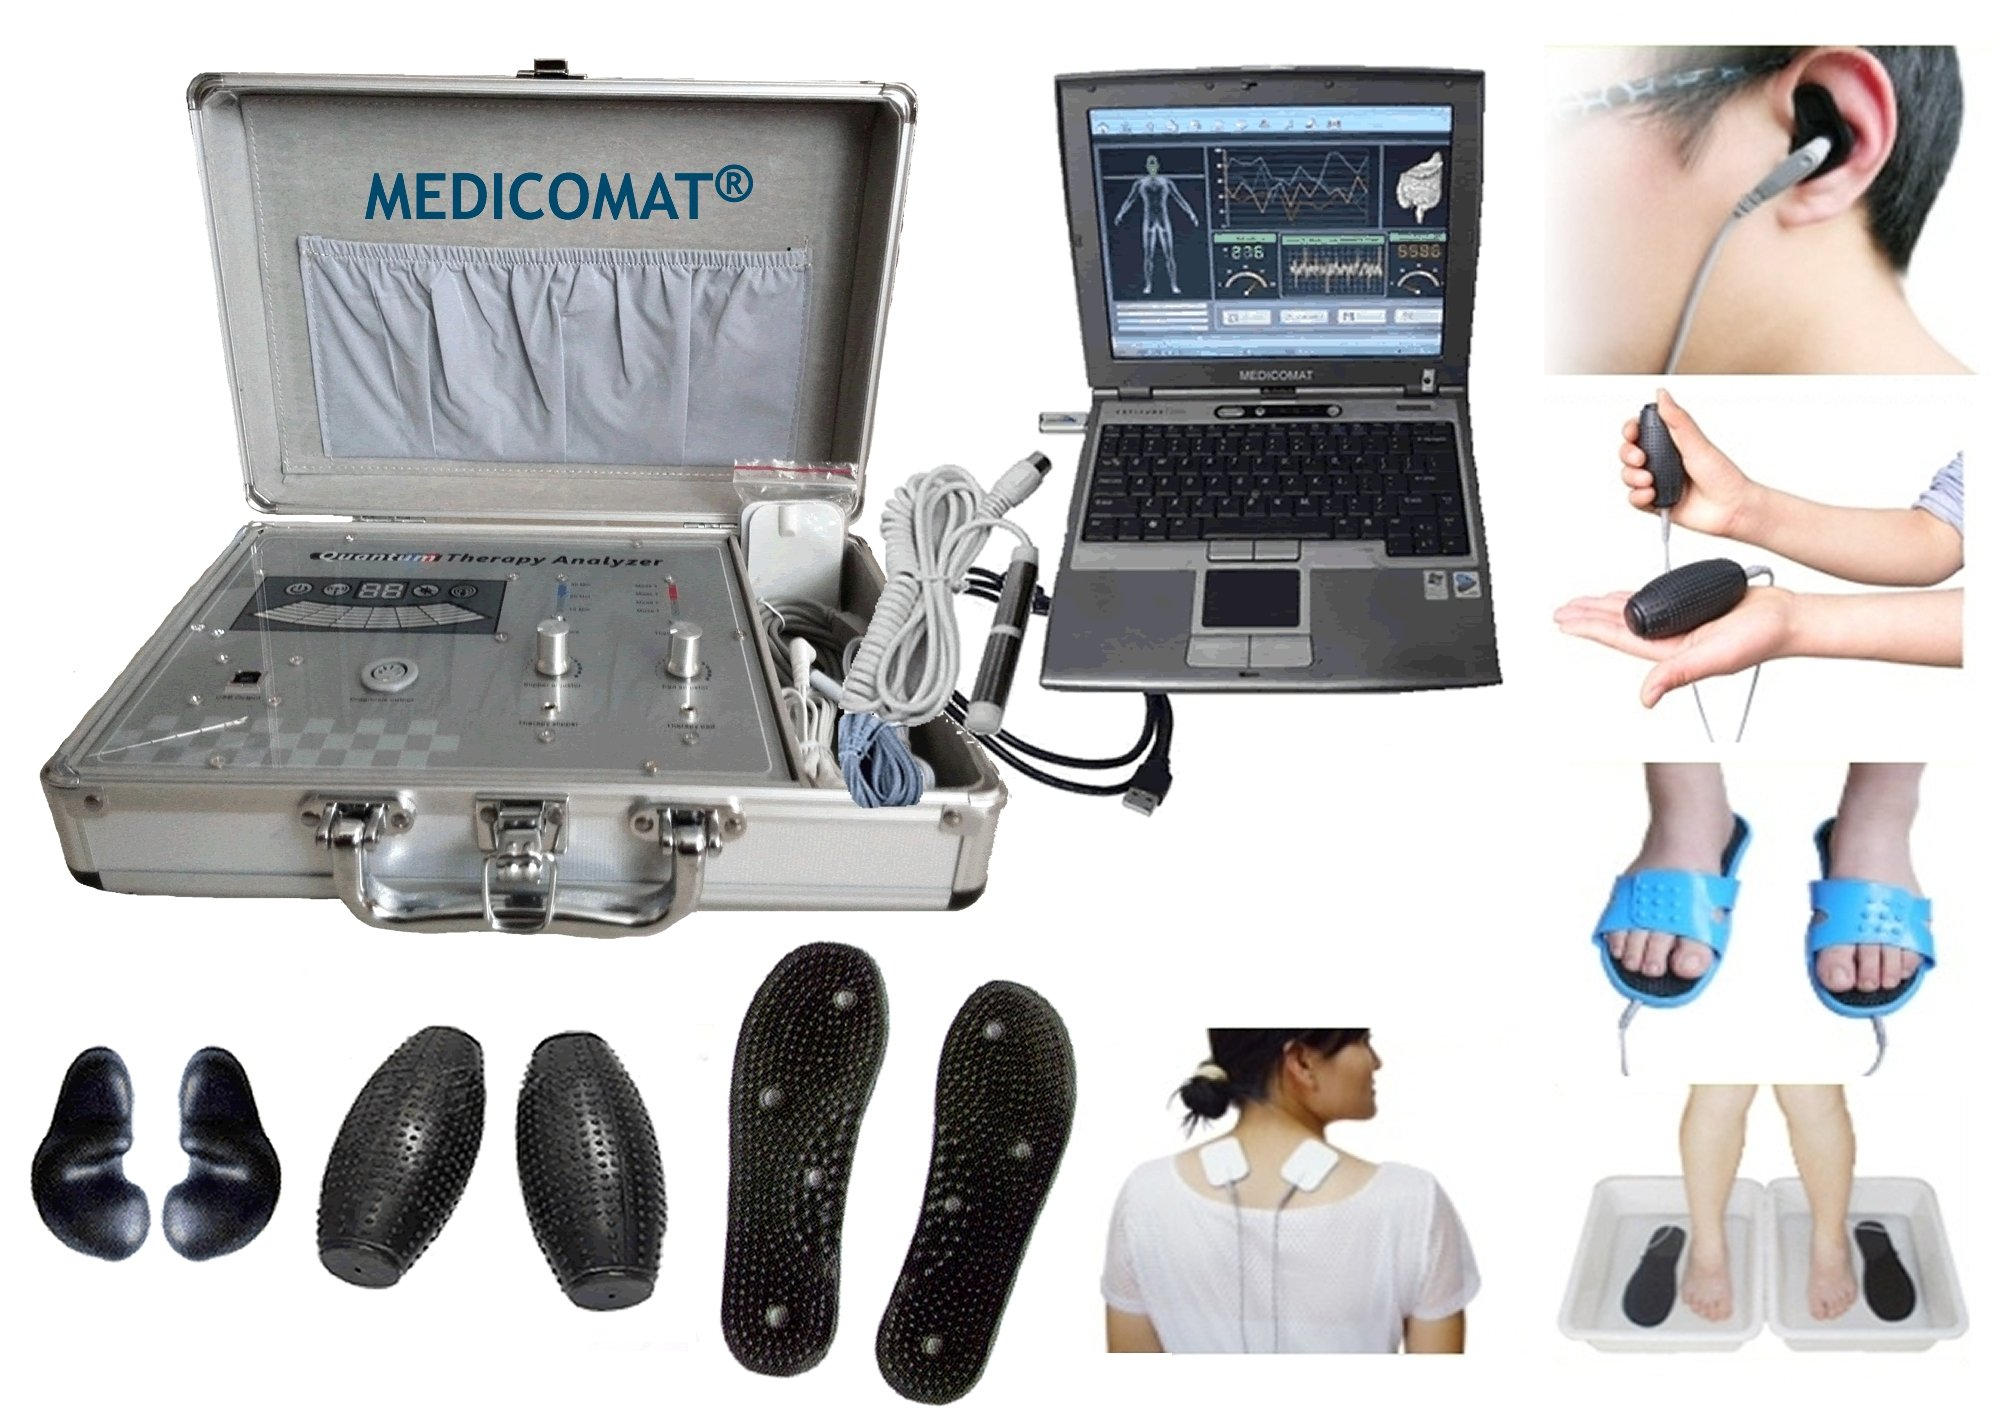 Modern Healthcare Medicomat-29 * Healthcare Tests Treatment Computer Quantum Diagnostic